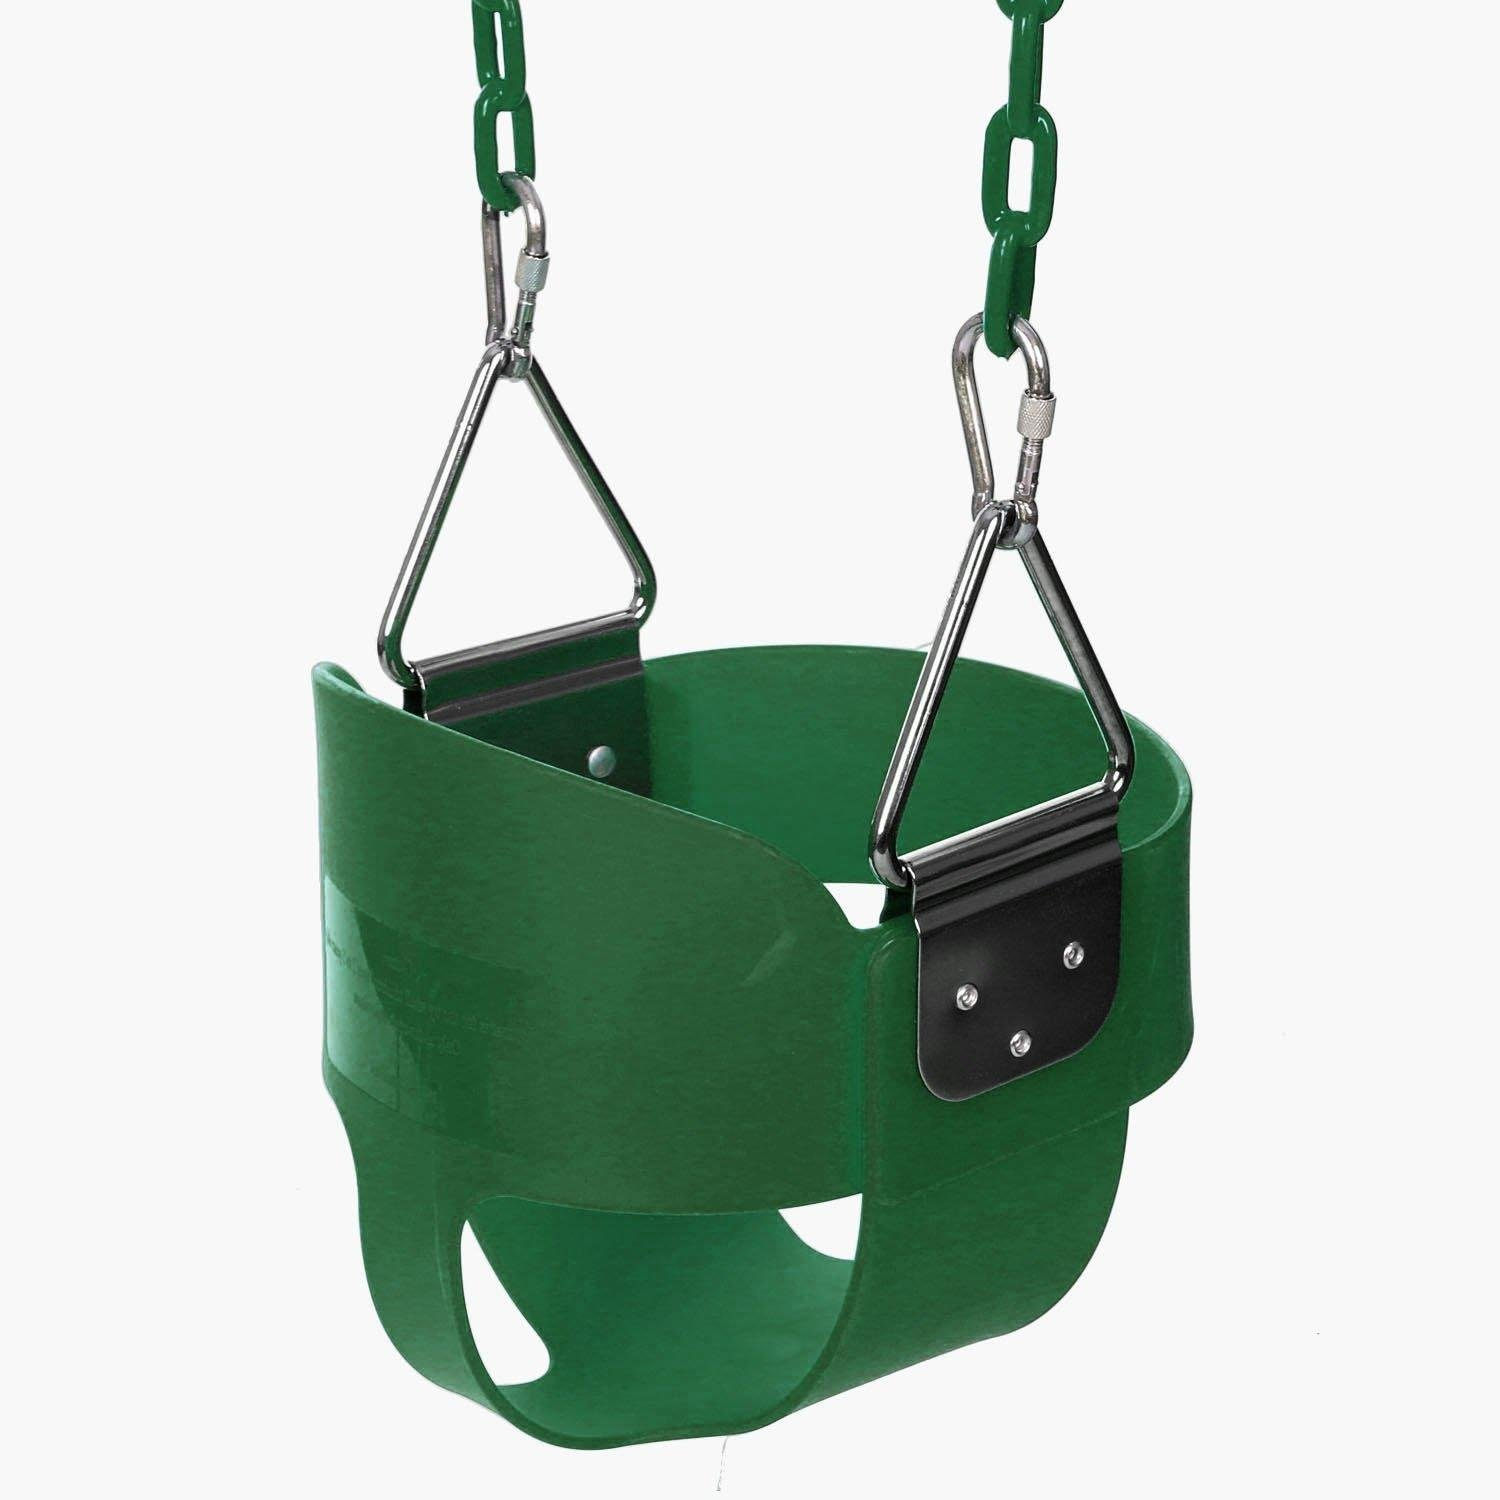 Bucket Swing Seat Outdoor Kids Child High Back Full with Coated Chain Home Garden(US Stock) (Green)